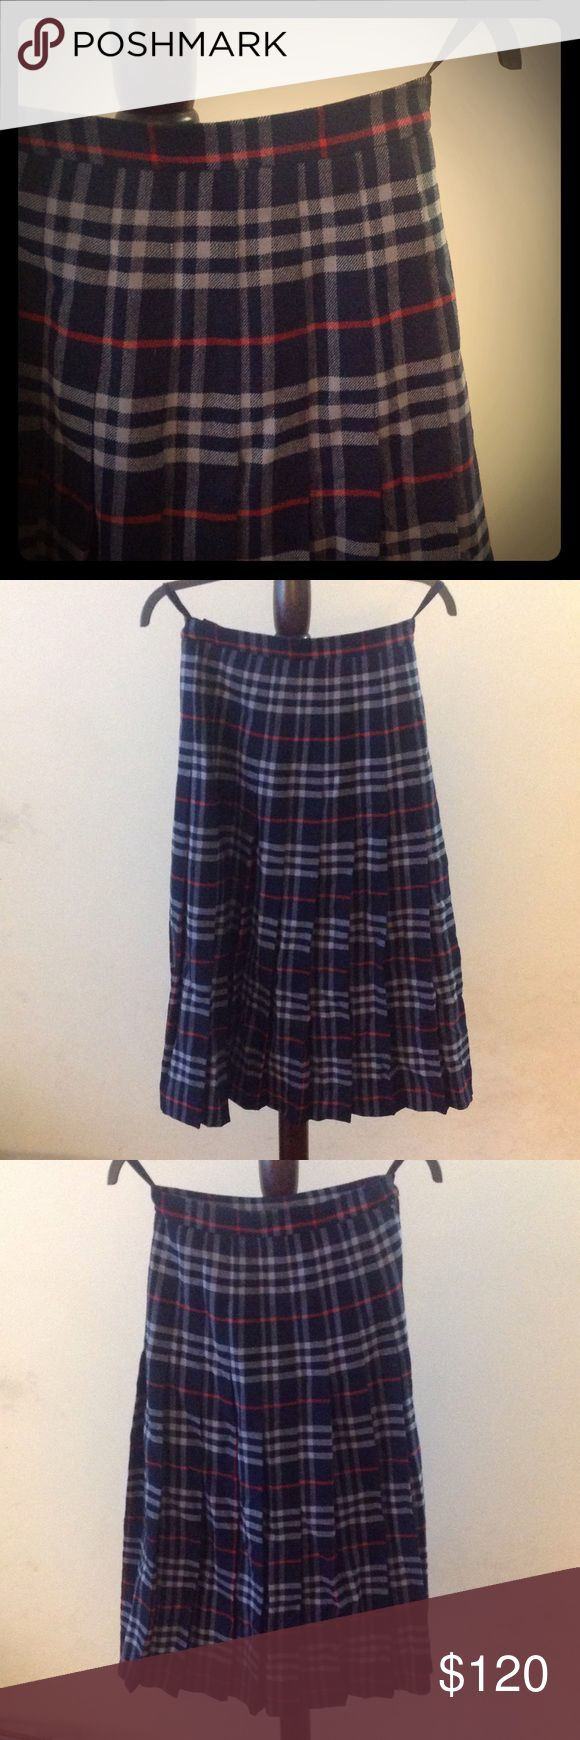 Authentic 1980s Vintage Wool Burberry Skirt Vintage pleated navy plaid wool Burberry skirt. I believe from the 1980s. Given to me by my mother. Excellent condition. Only worn a few times. Size 2 US. More information on the vintage label can be found here: http://vintagefashionguild.org/label-resource/burberrys/ Burberry Skirts Midi